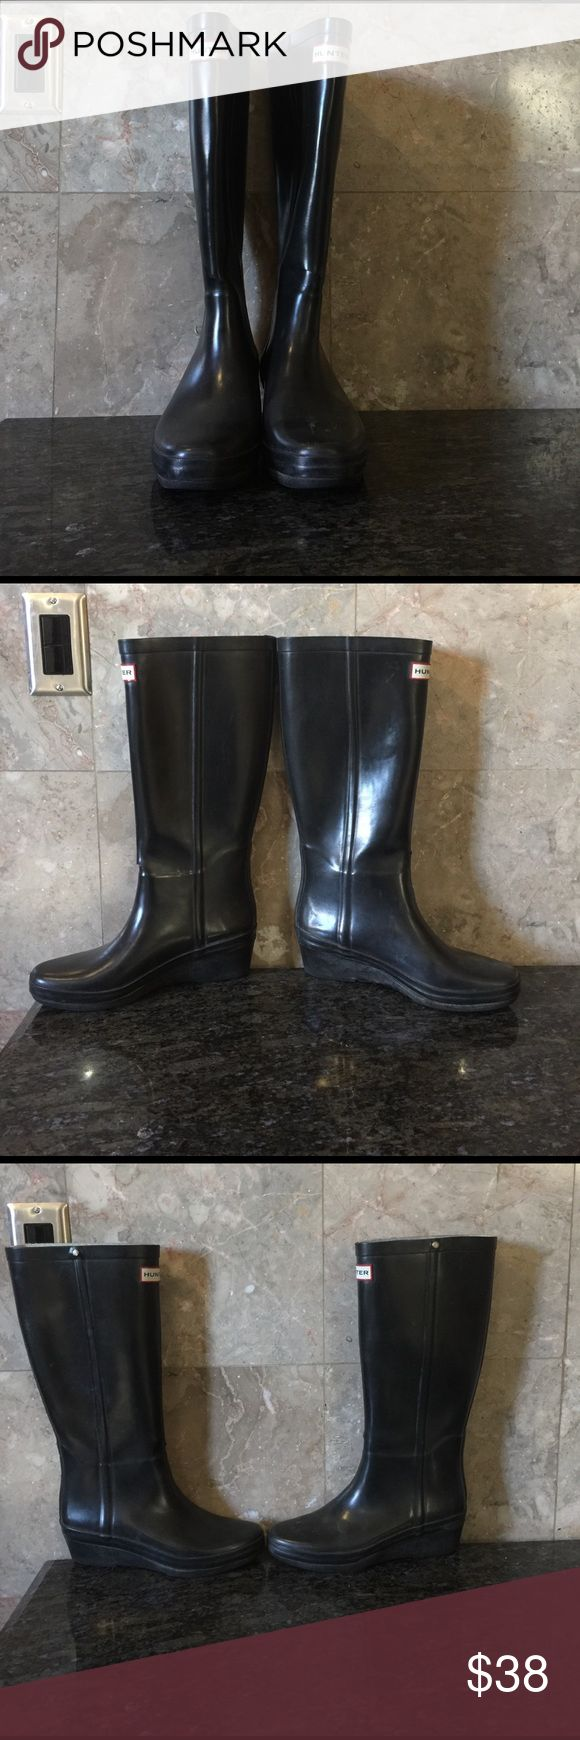 Tall shine flat Hunter boots Preloved with visual signs of wear. Their is also a tear on each boot as shown in pics. Can be repaired but I will leave that up to you as well as the cleaning, price discounted fir that. The boots are fully lined with a cloth material from the inside. I habrdly ever get this style. Don't miss out Hunter Boots Shoes Winter & Rain Boots